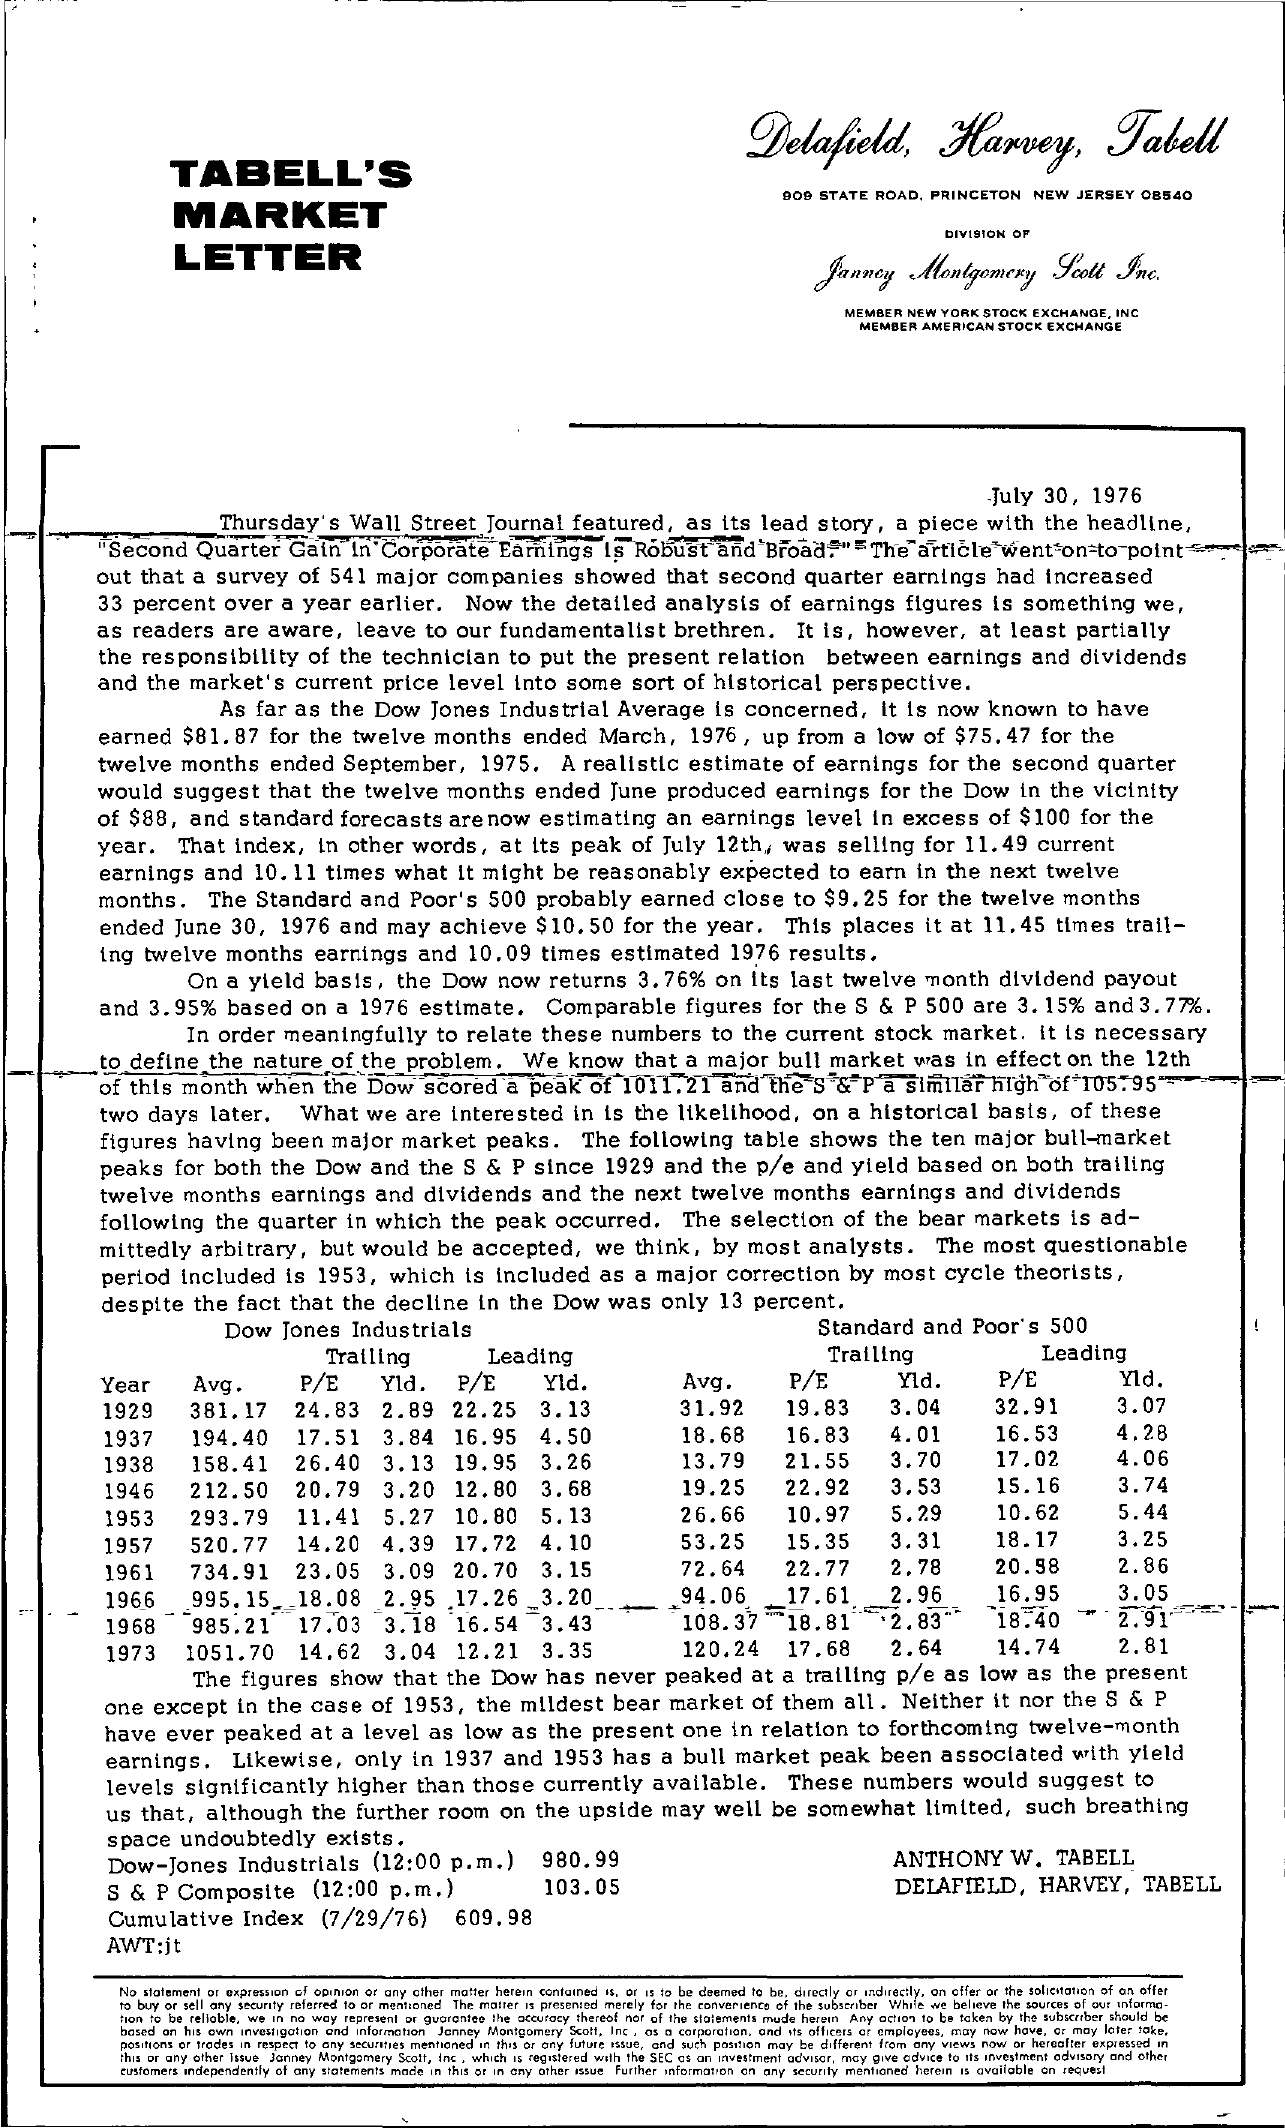 Tabell's Market Letter - July 30, 1976